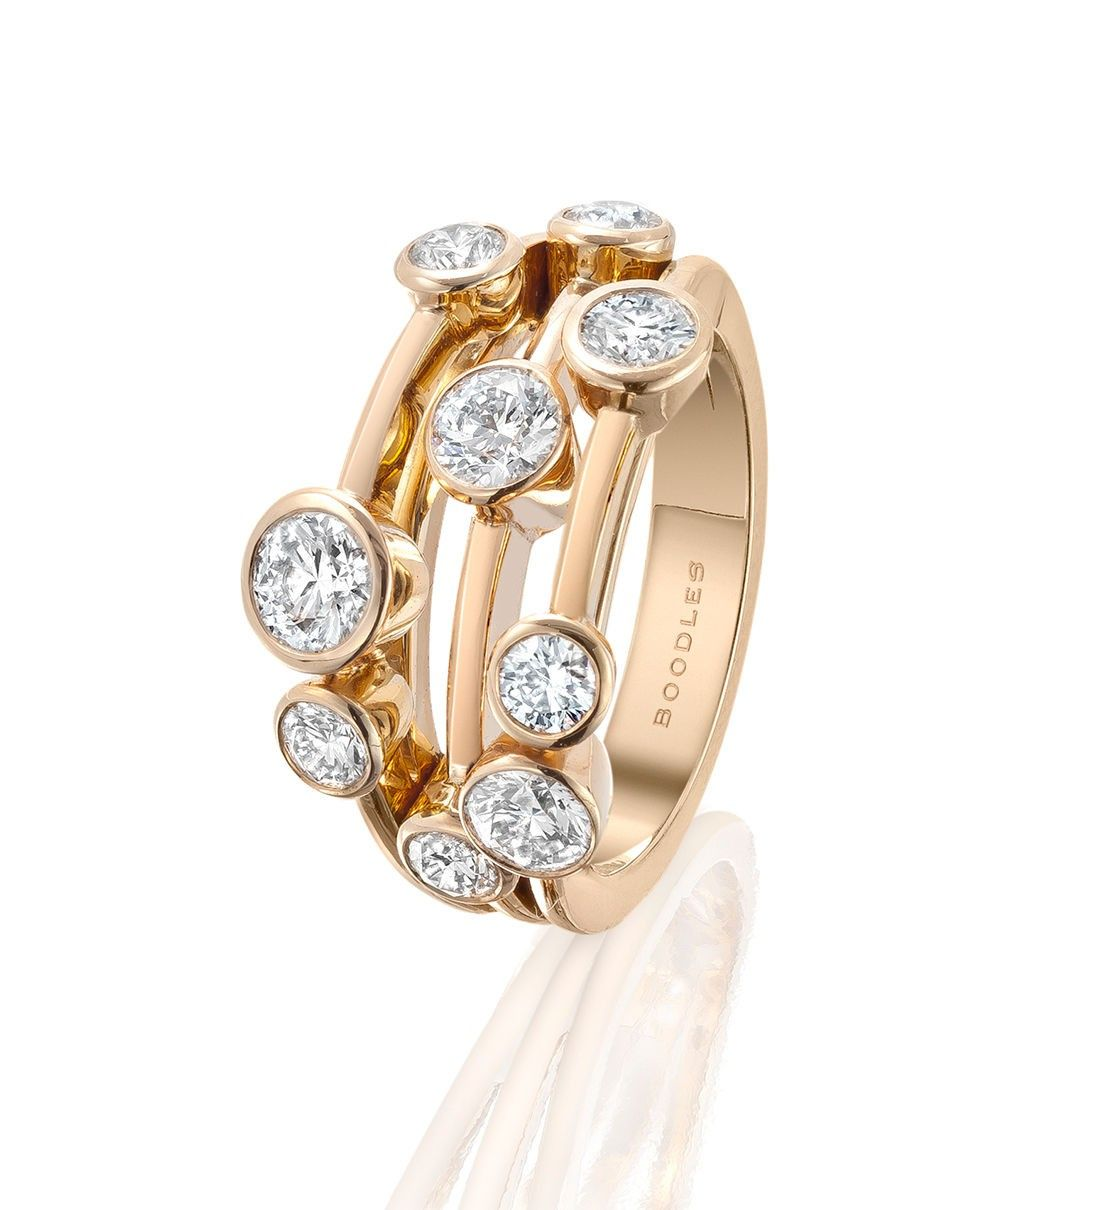 923f259d97f663 Raindance Classic Rose Gold Diamond Ring from Boodles - my beautiful 2nd  anniversary gift